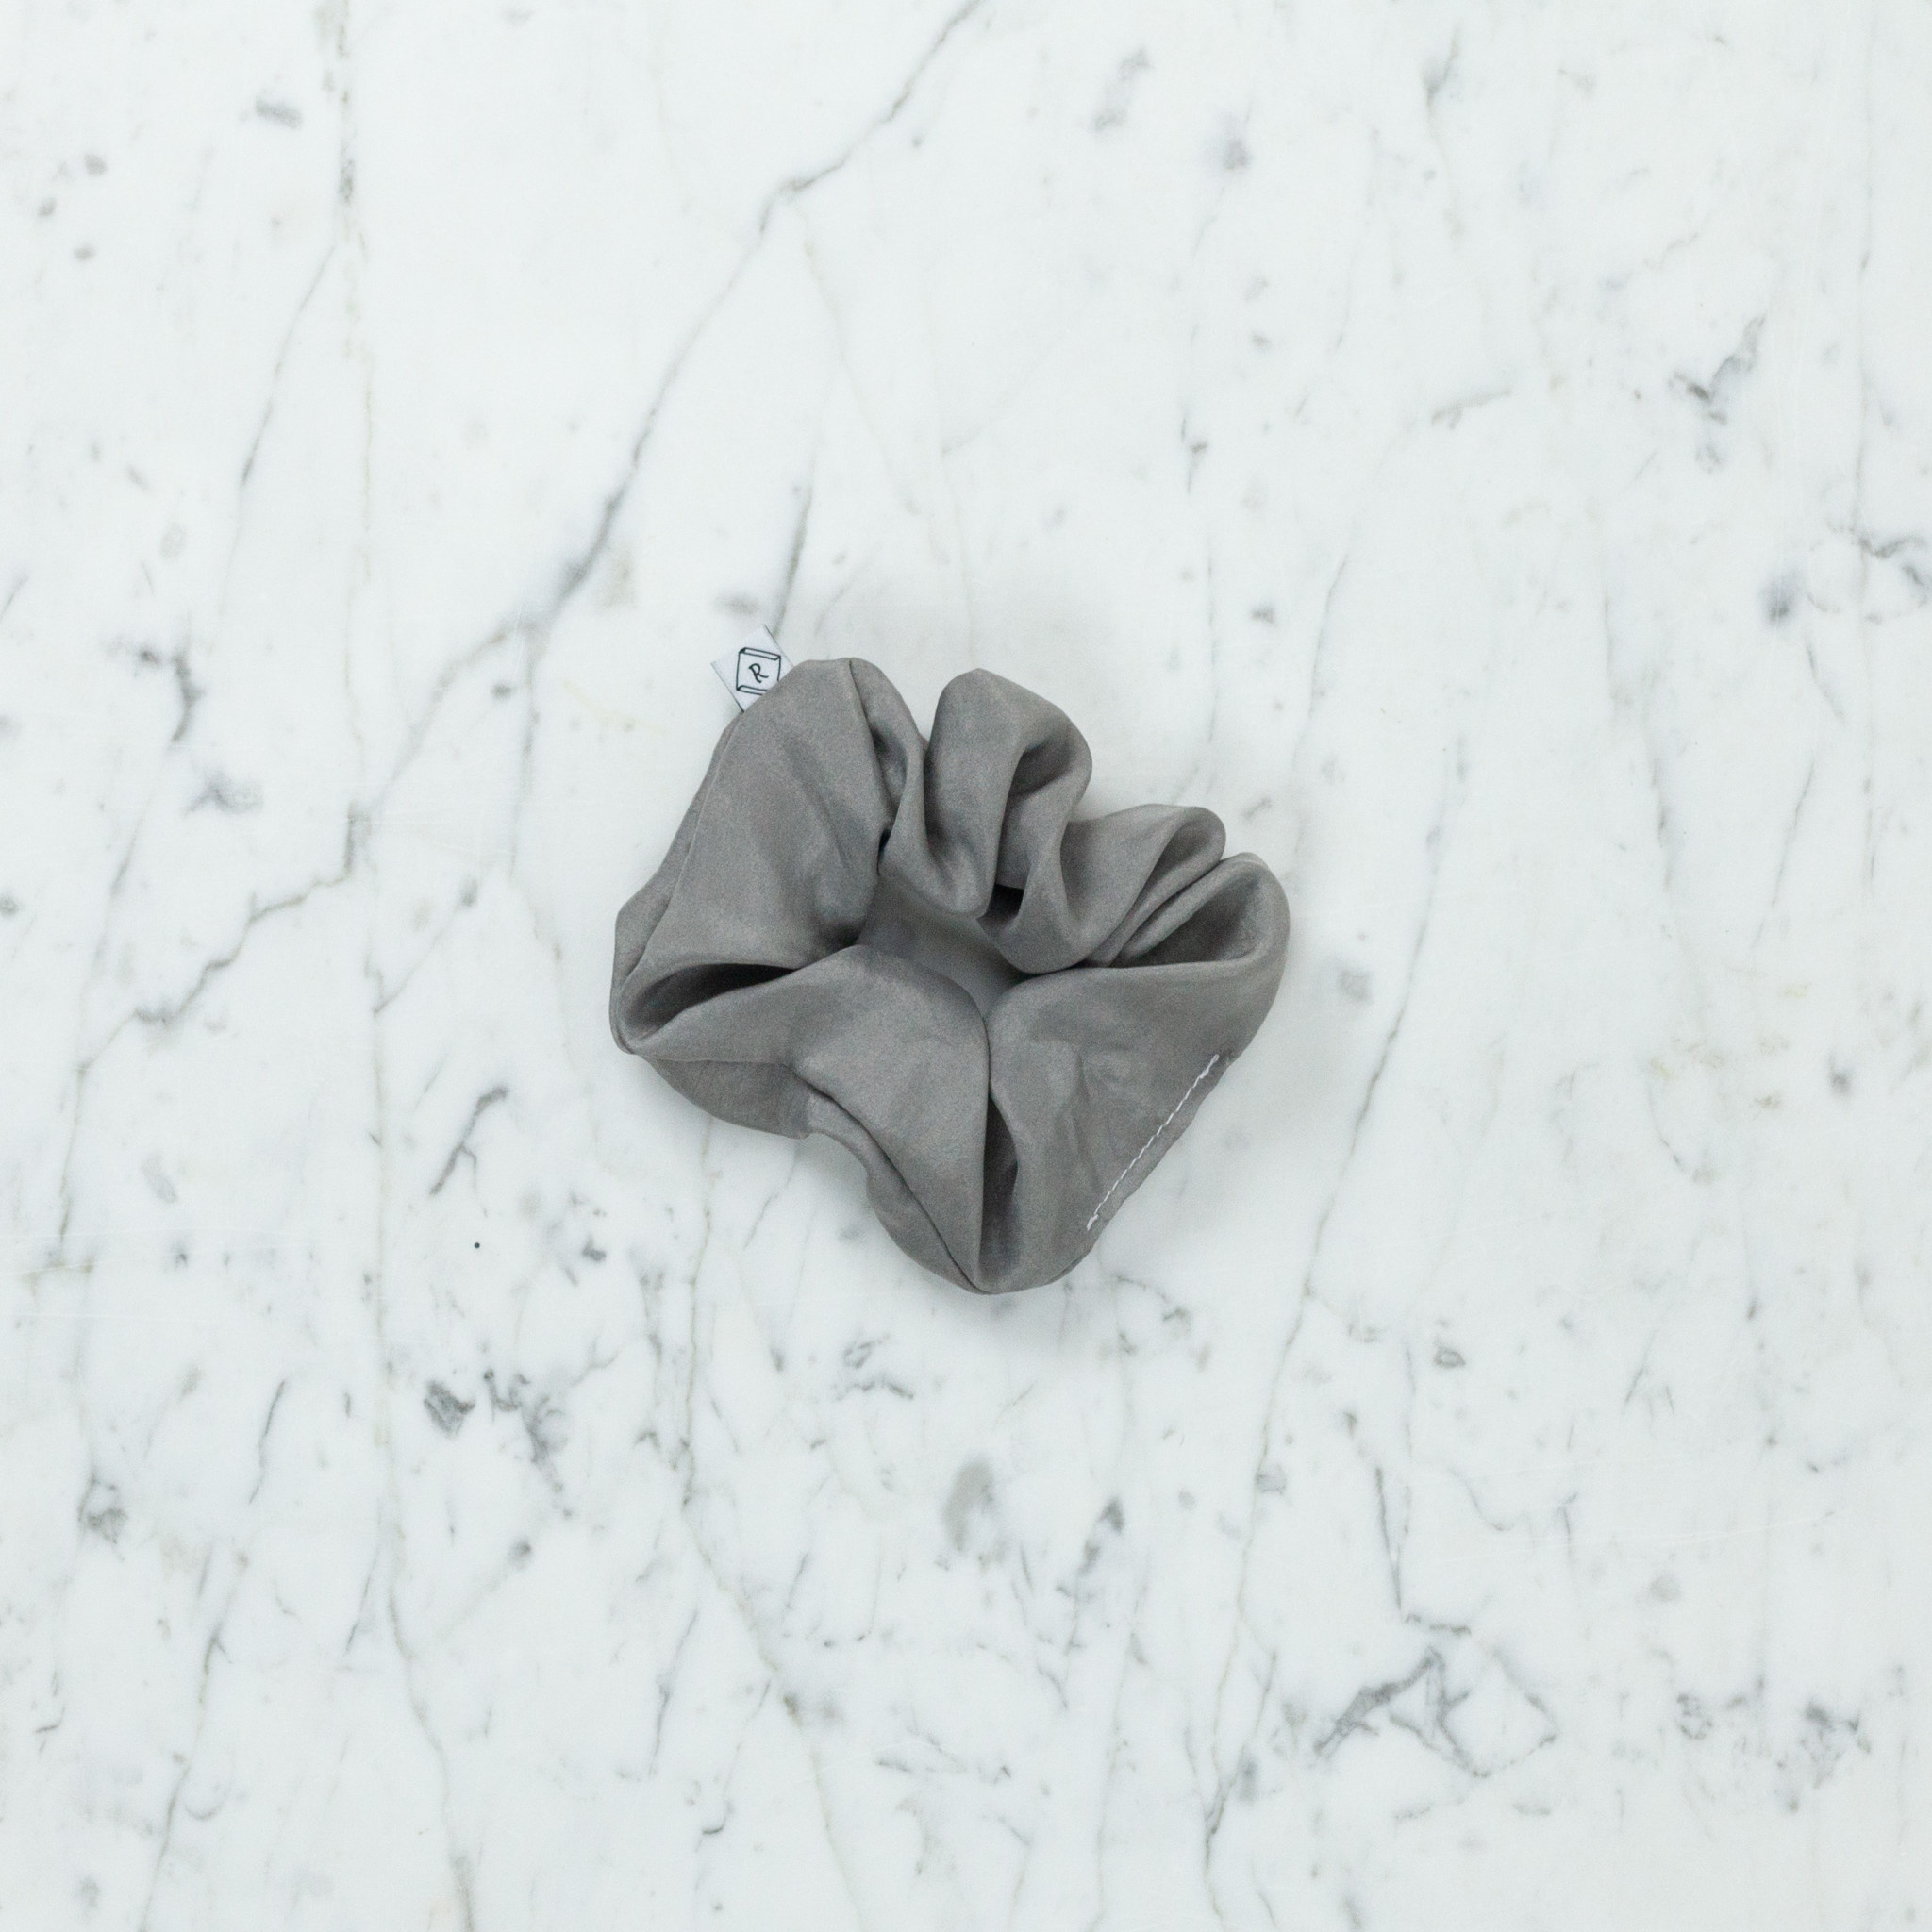 Rosemarine Textiles Plant Dyed Silk Scrunchie - Charcoal